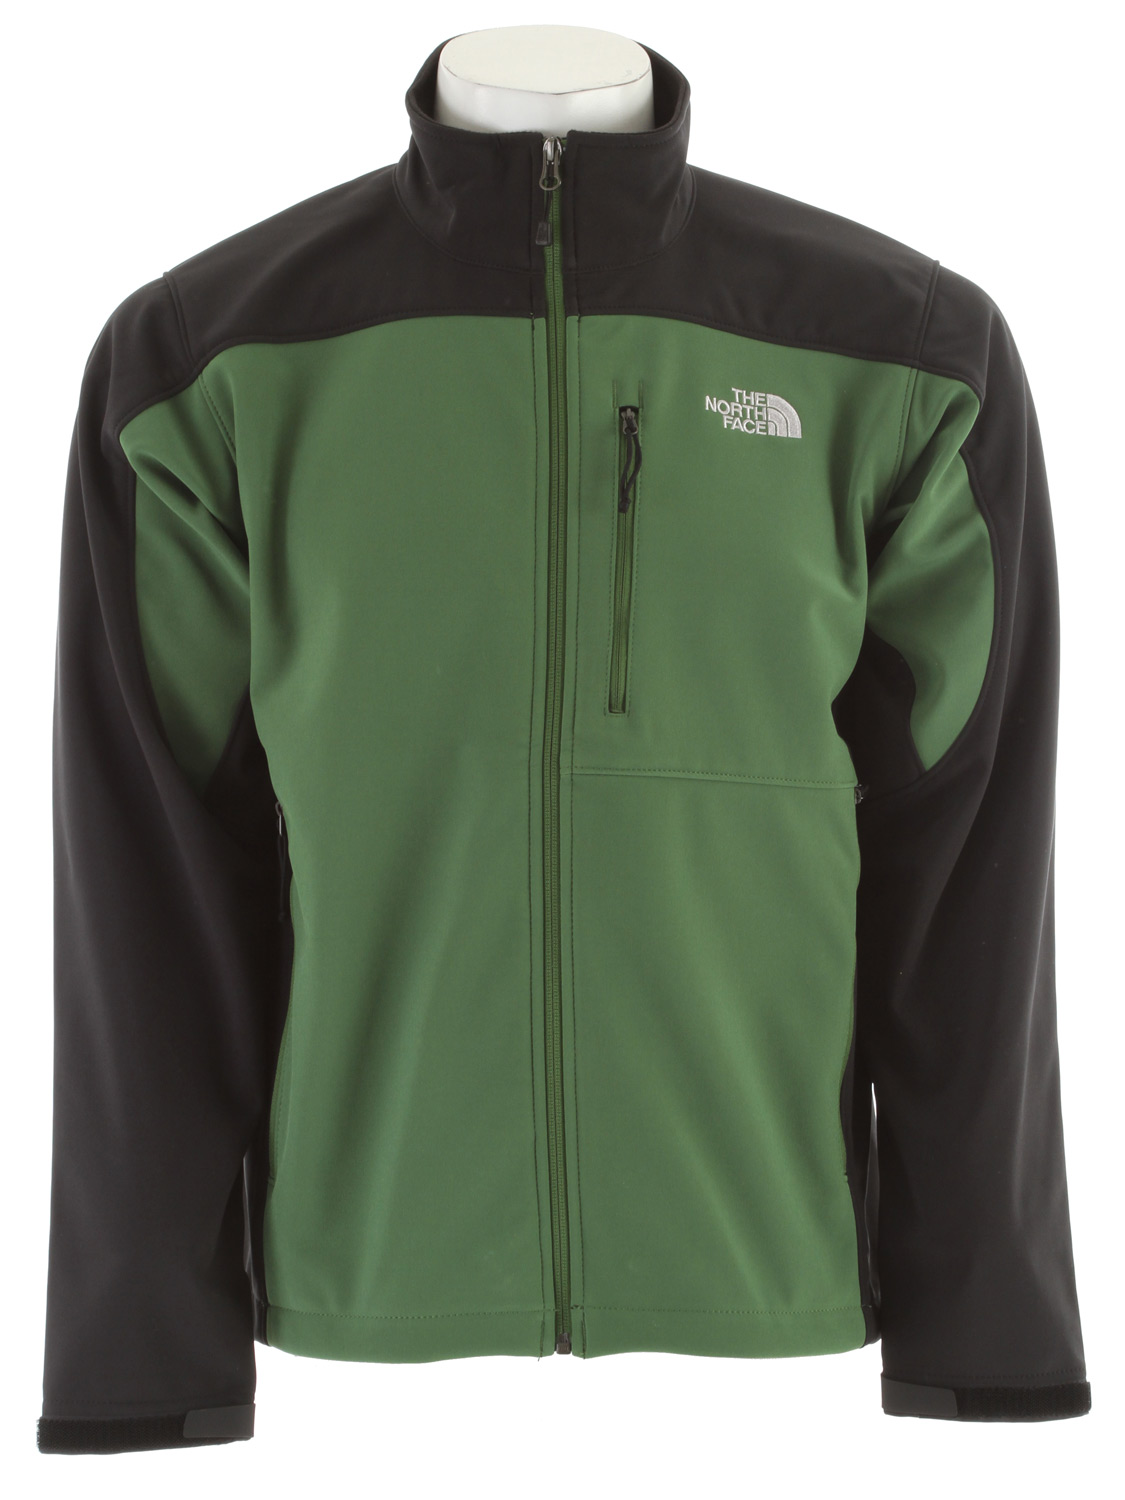 "Four-season, versatile, windproof soft shell with a stretchy, comfortable fit ideal for multiple activities. Key Features of The North Face Apex Bionic Jacket: Fabric: 90D 351 g/m2 (10.3 oz/yd2) plain weave polyester TNF Apex ClimateBlock Avg Weight: 658 g (23.21 oz) Center Back: 28"" Most versatile and widely worn soft shell has enhanced windproof features and a stretchy, comfortable fit; ideal for multiple activities. Standard fit TNF Apex ClimateBlock fabric wind permeability rated at 0 CFM Fleece backer Napoleon chest pocket Two hand pockets Velcro adjustable cuffs with molded cuff tabs Hem cinch-cord adjustment in pockets *3XL only available in Asphalt Grey, Deep Water Blue and TNF Black - $111.95"